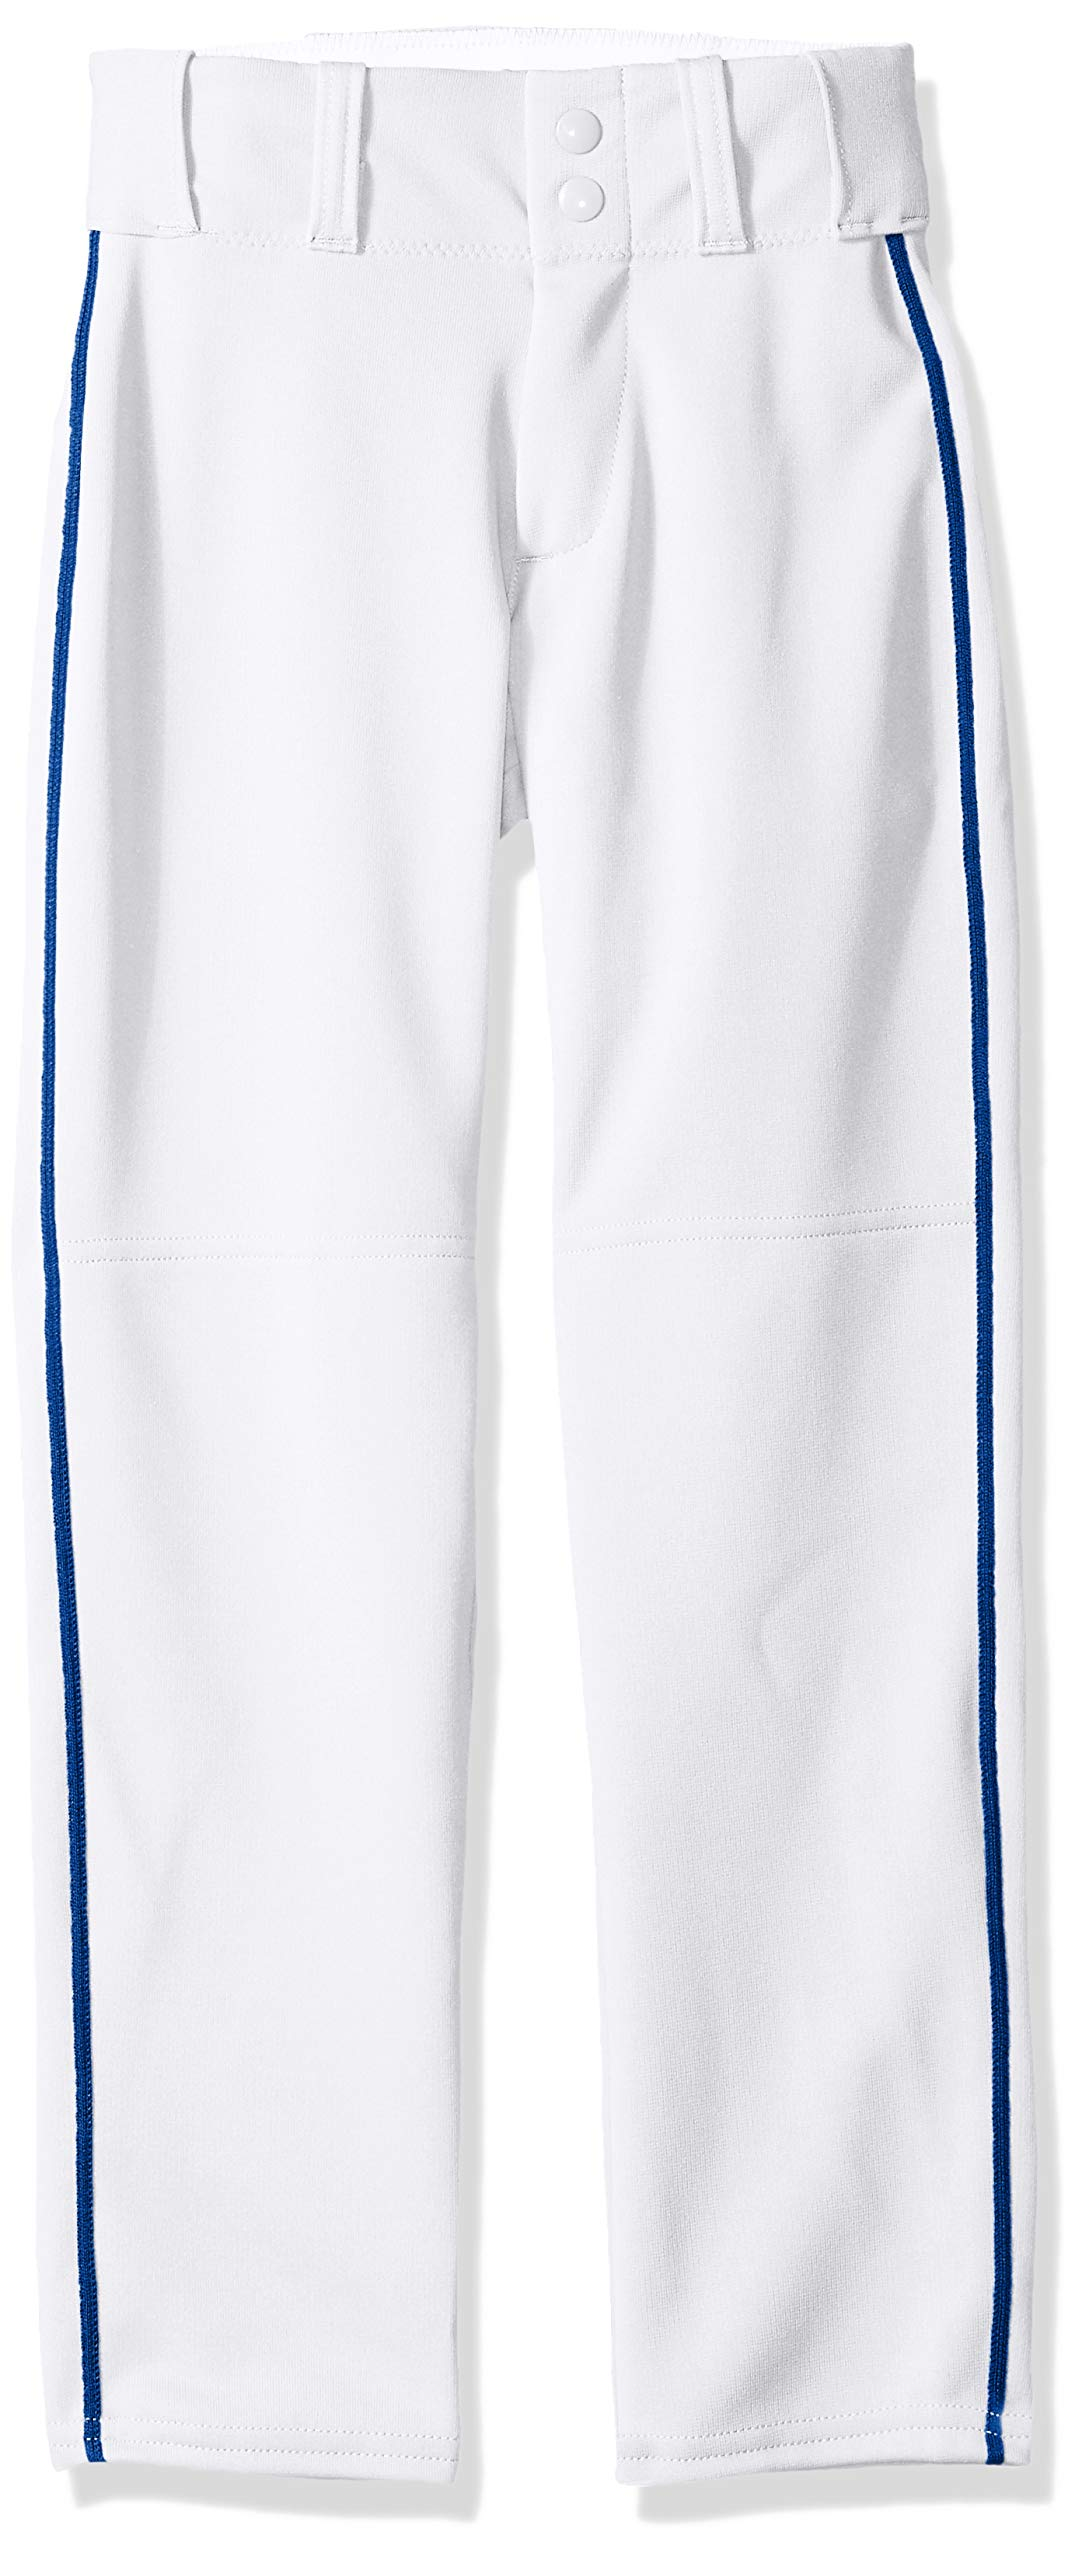 Alleson Ahtletic Boys Youth Baseball Pants with Braid, White/Royal, X-Large by Alleson Athletic